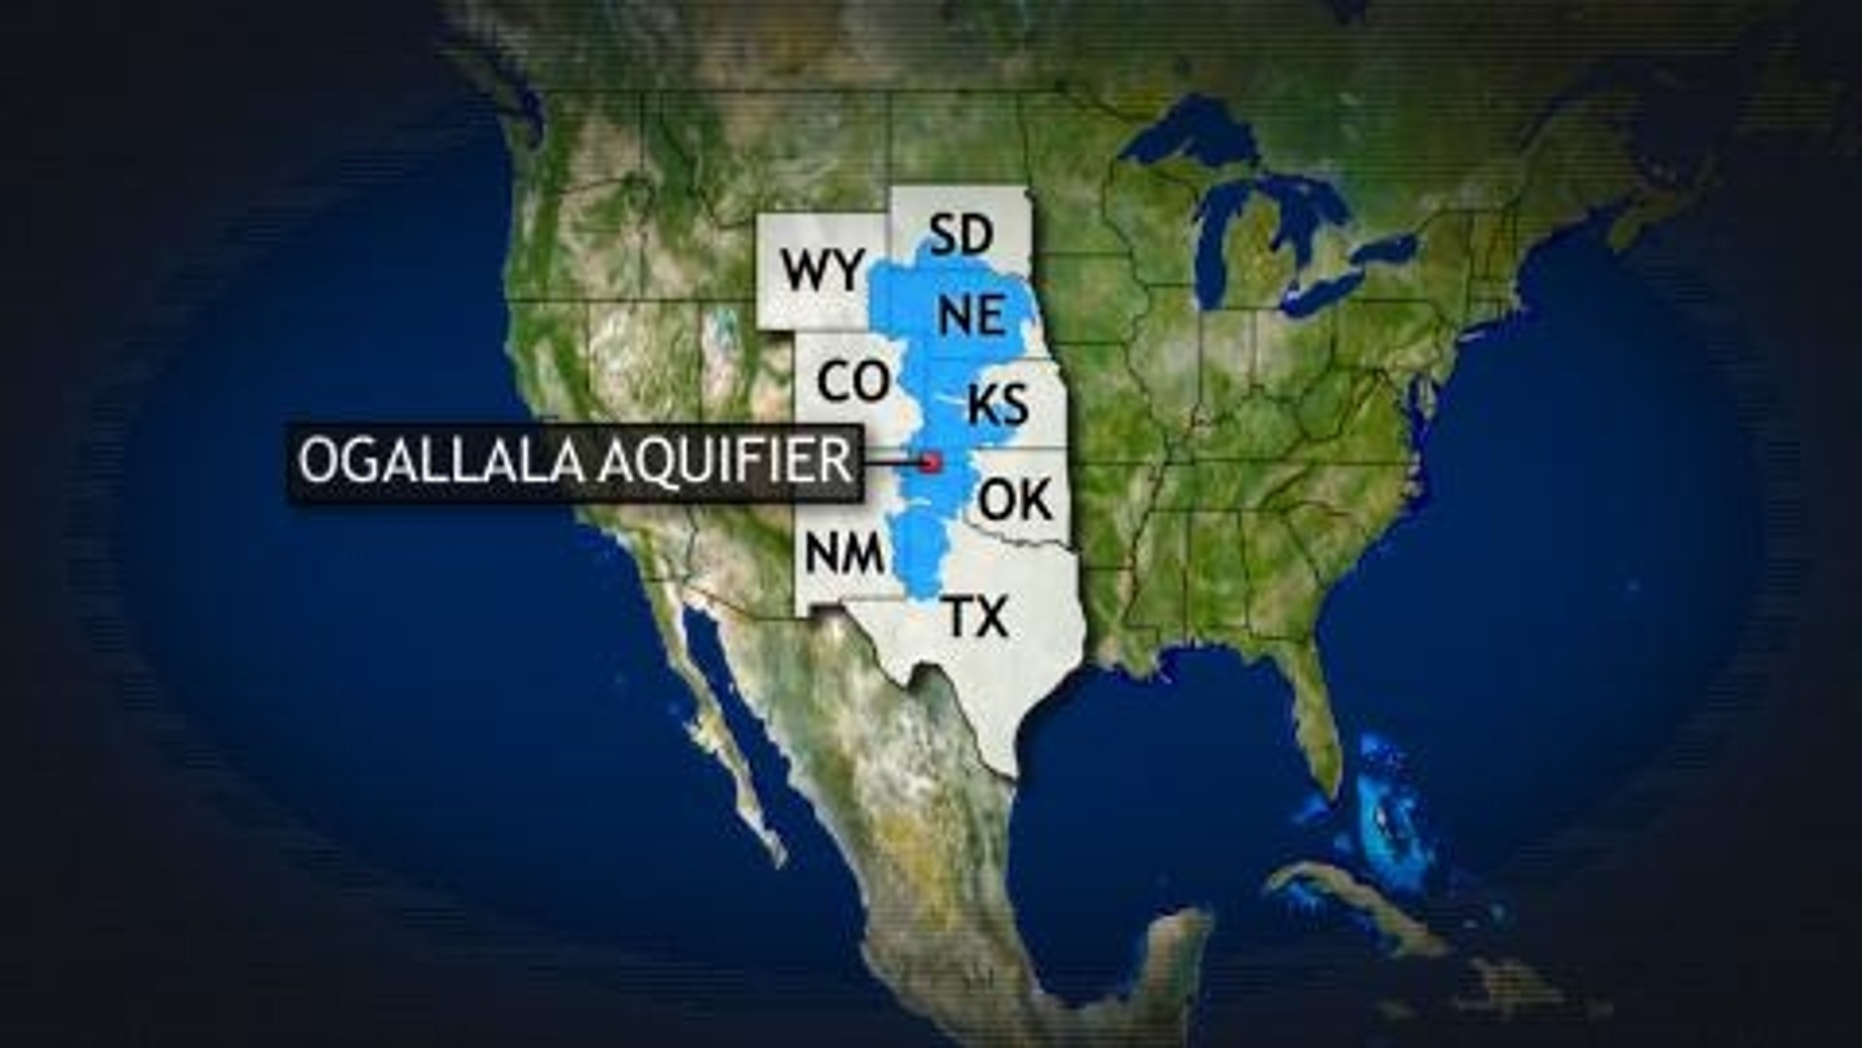 Map of Ogallala Aquifer, which is at the heart of the controversy against the TransCanada pipeline.